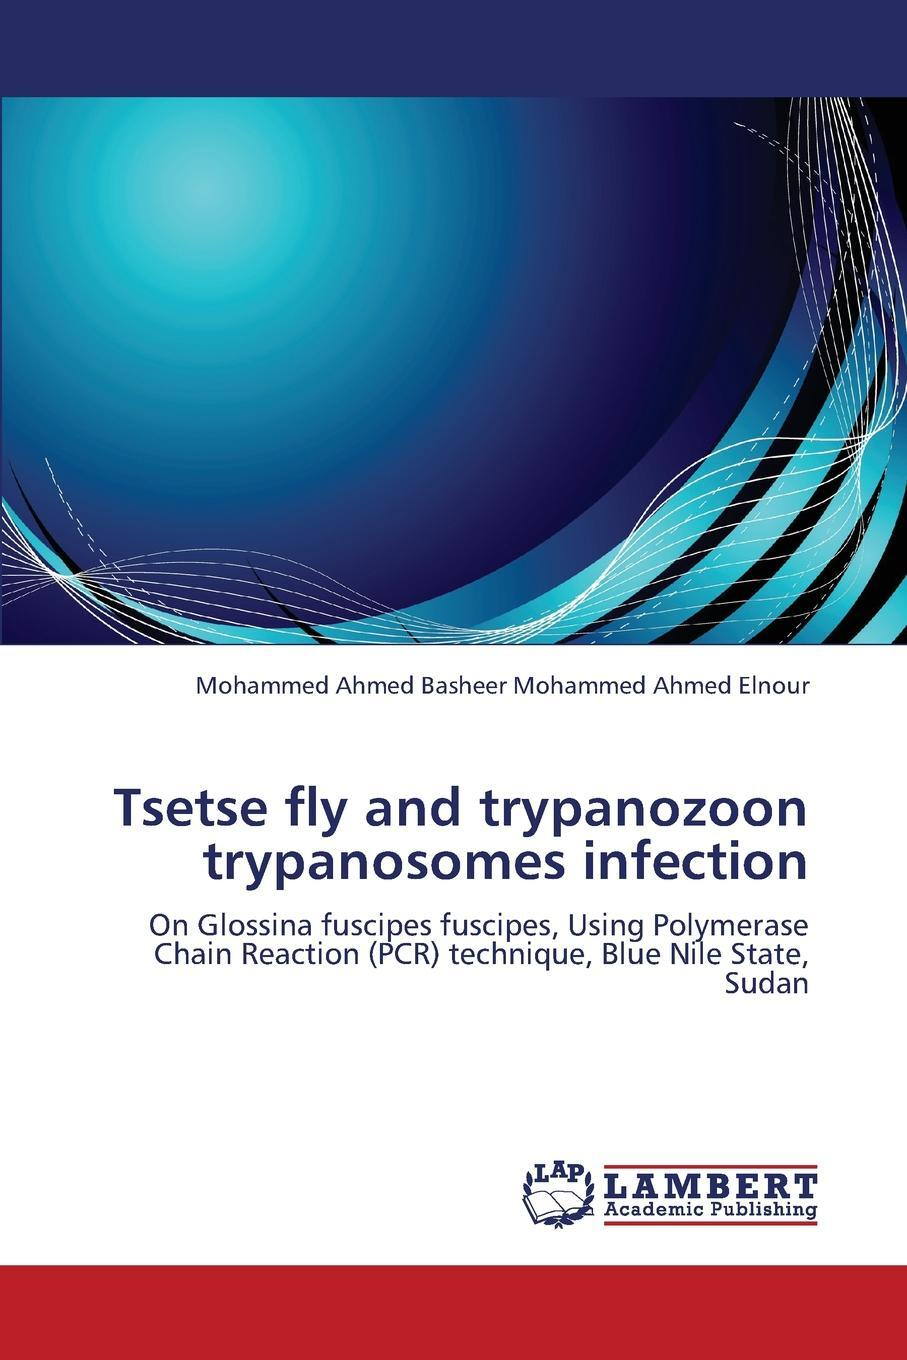 Tsetse Fly and Trypanozoon Trypanosomes Infection